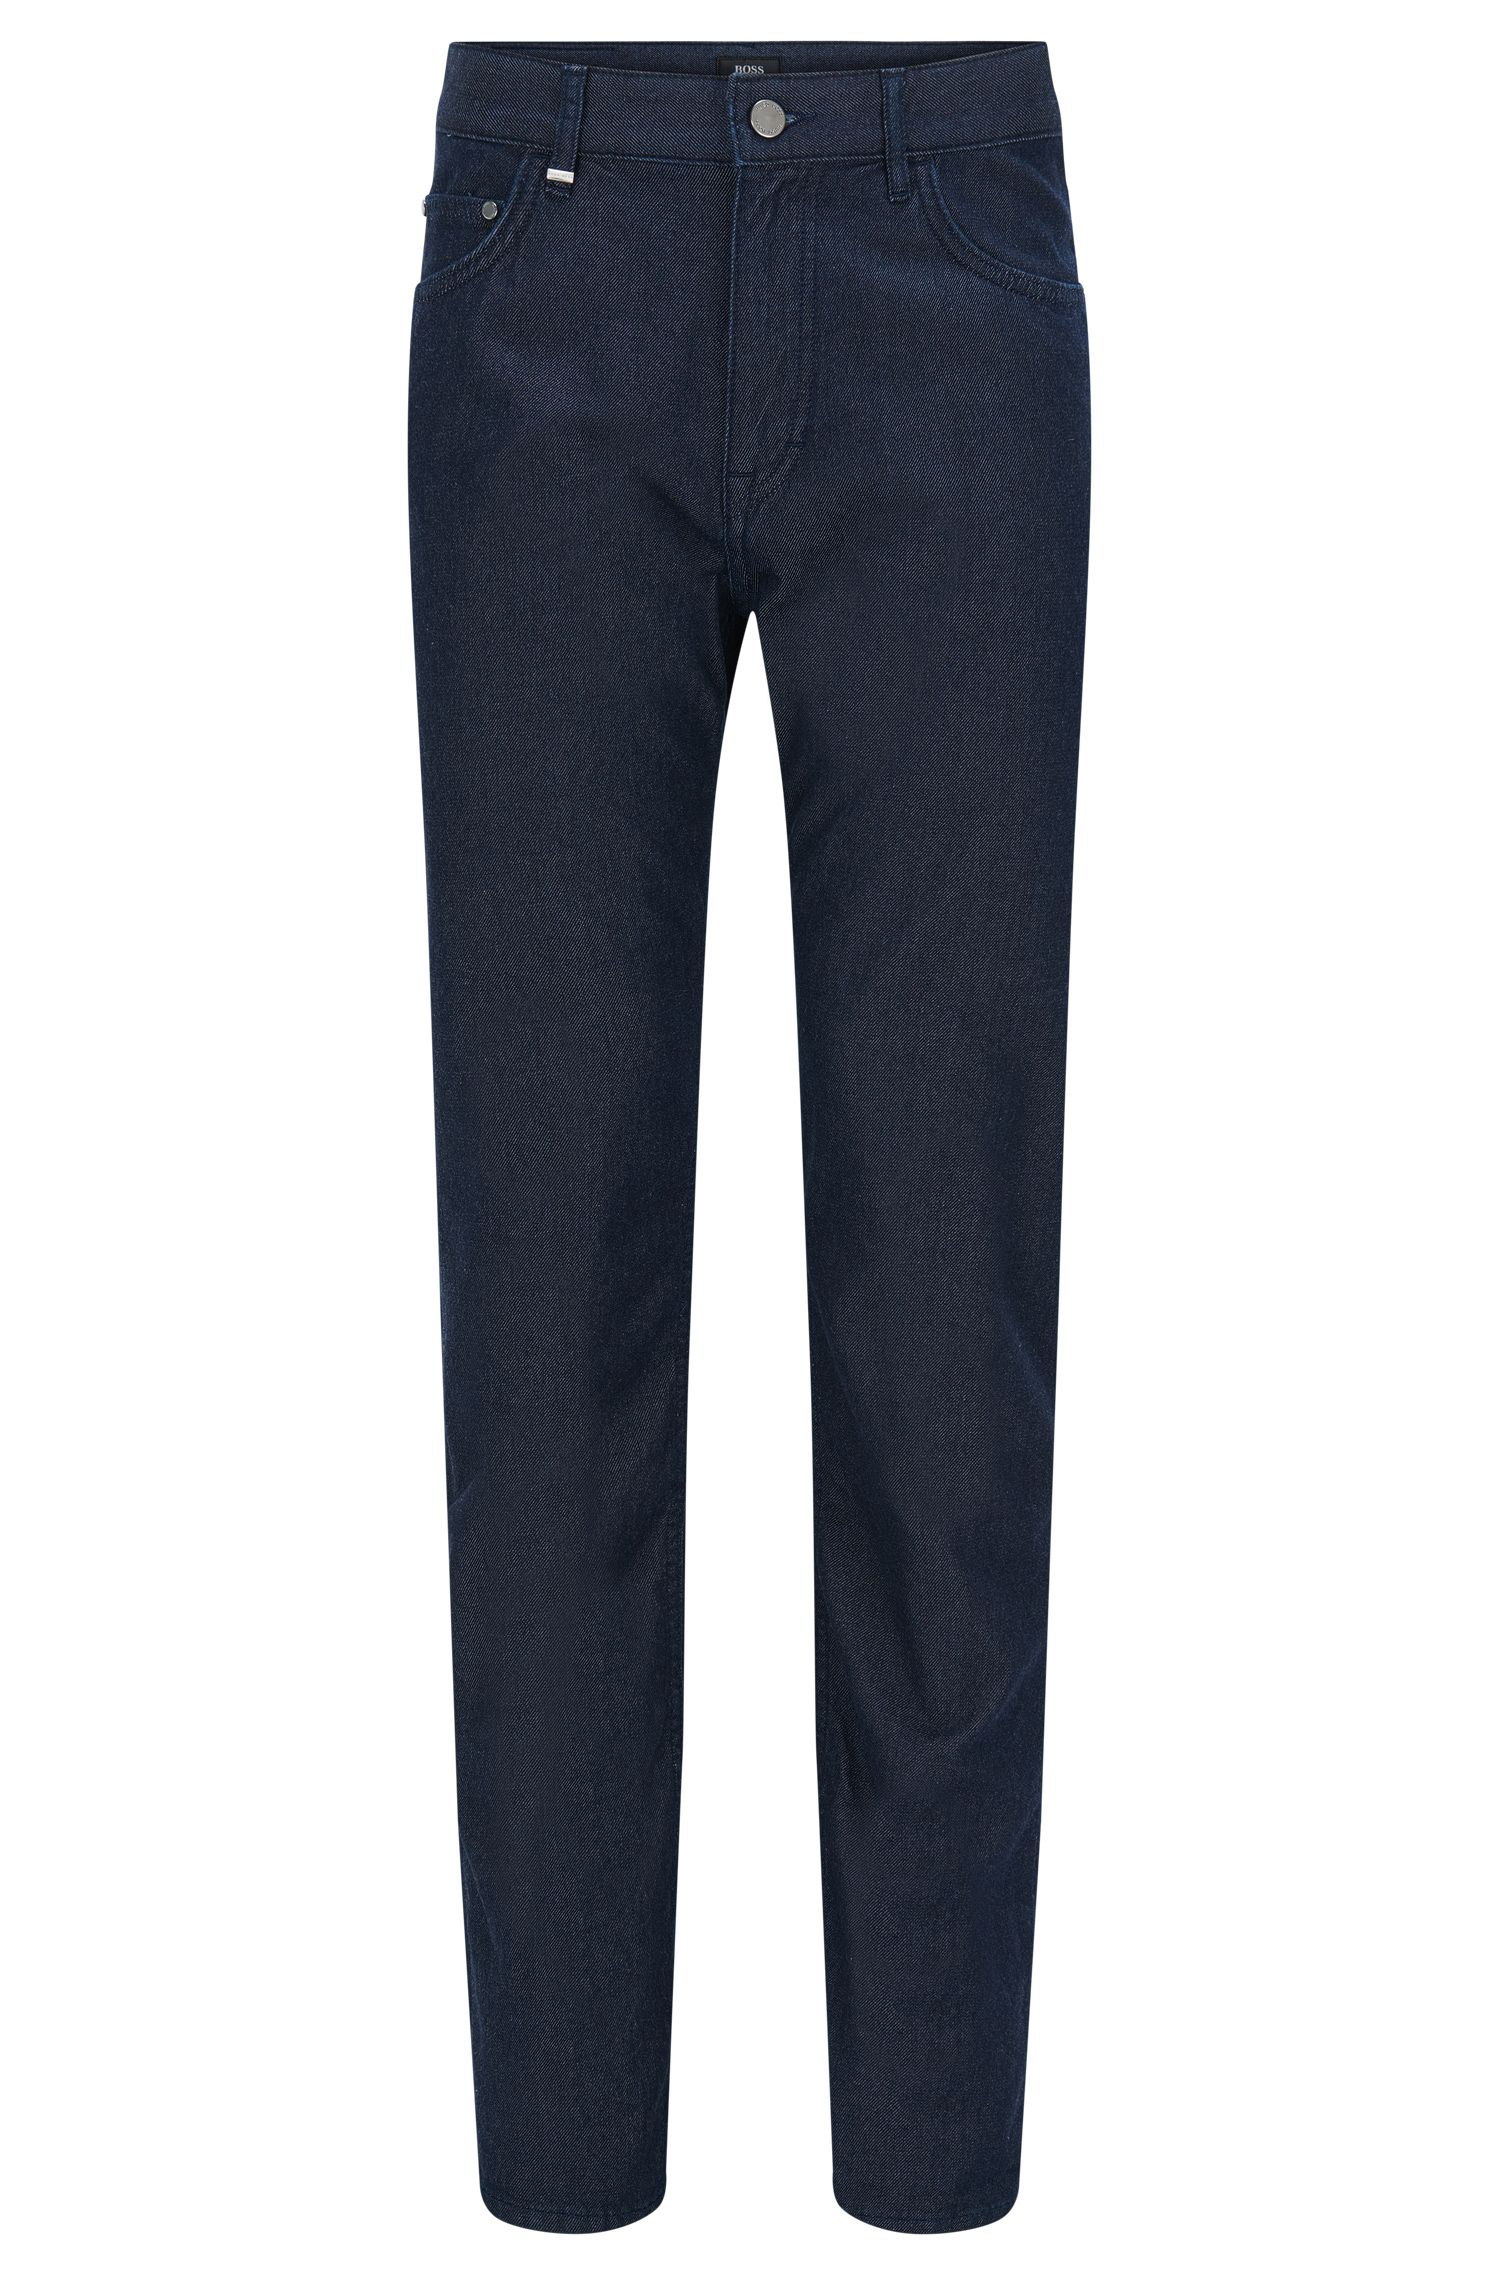 9.5 oz Cotton Cashmere Jeans, Comfort Fit | Albany